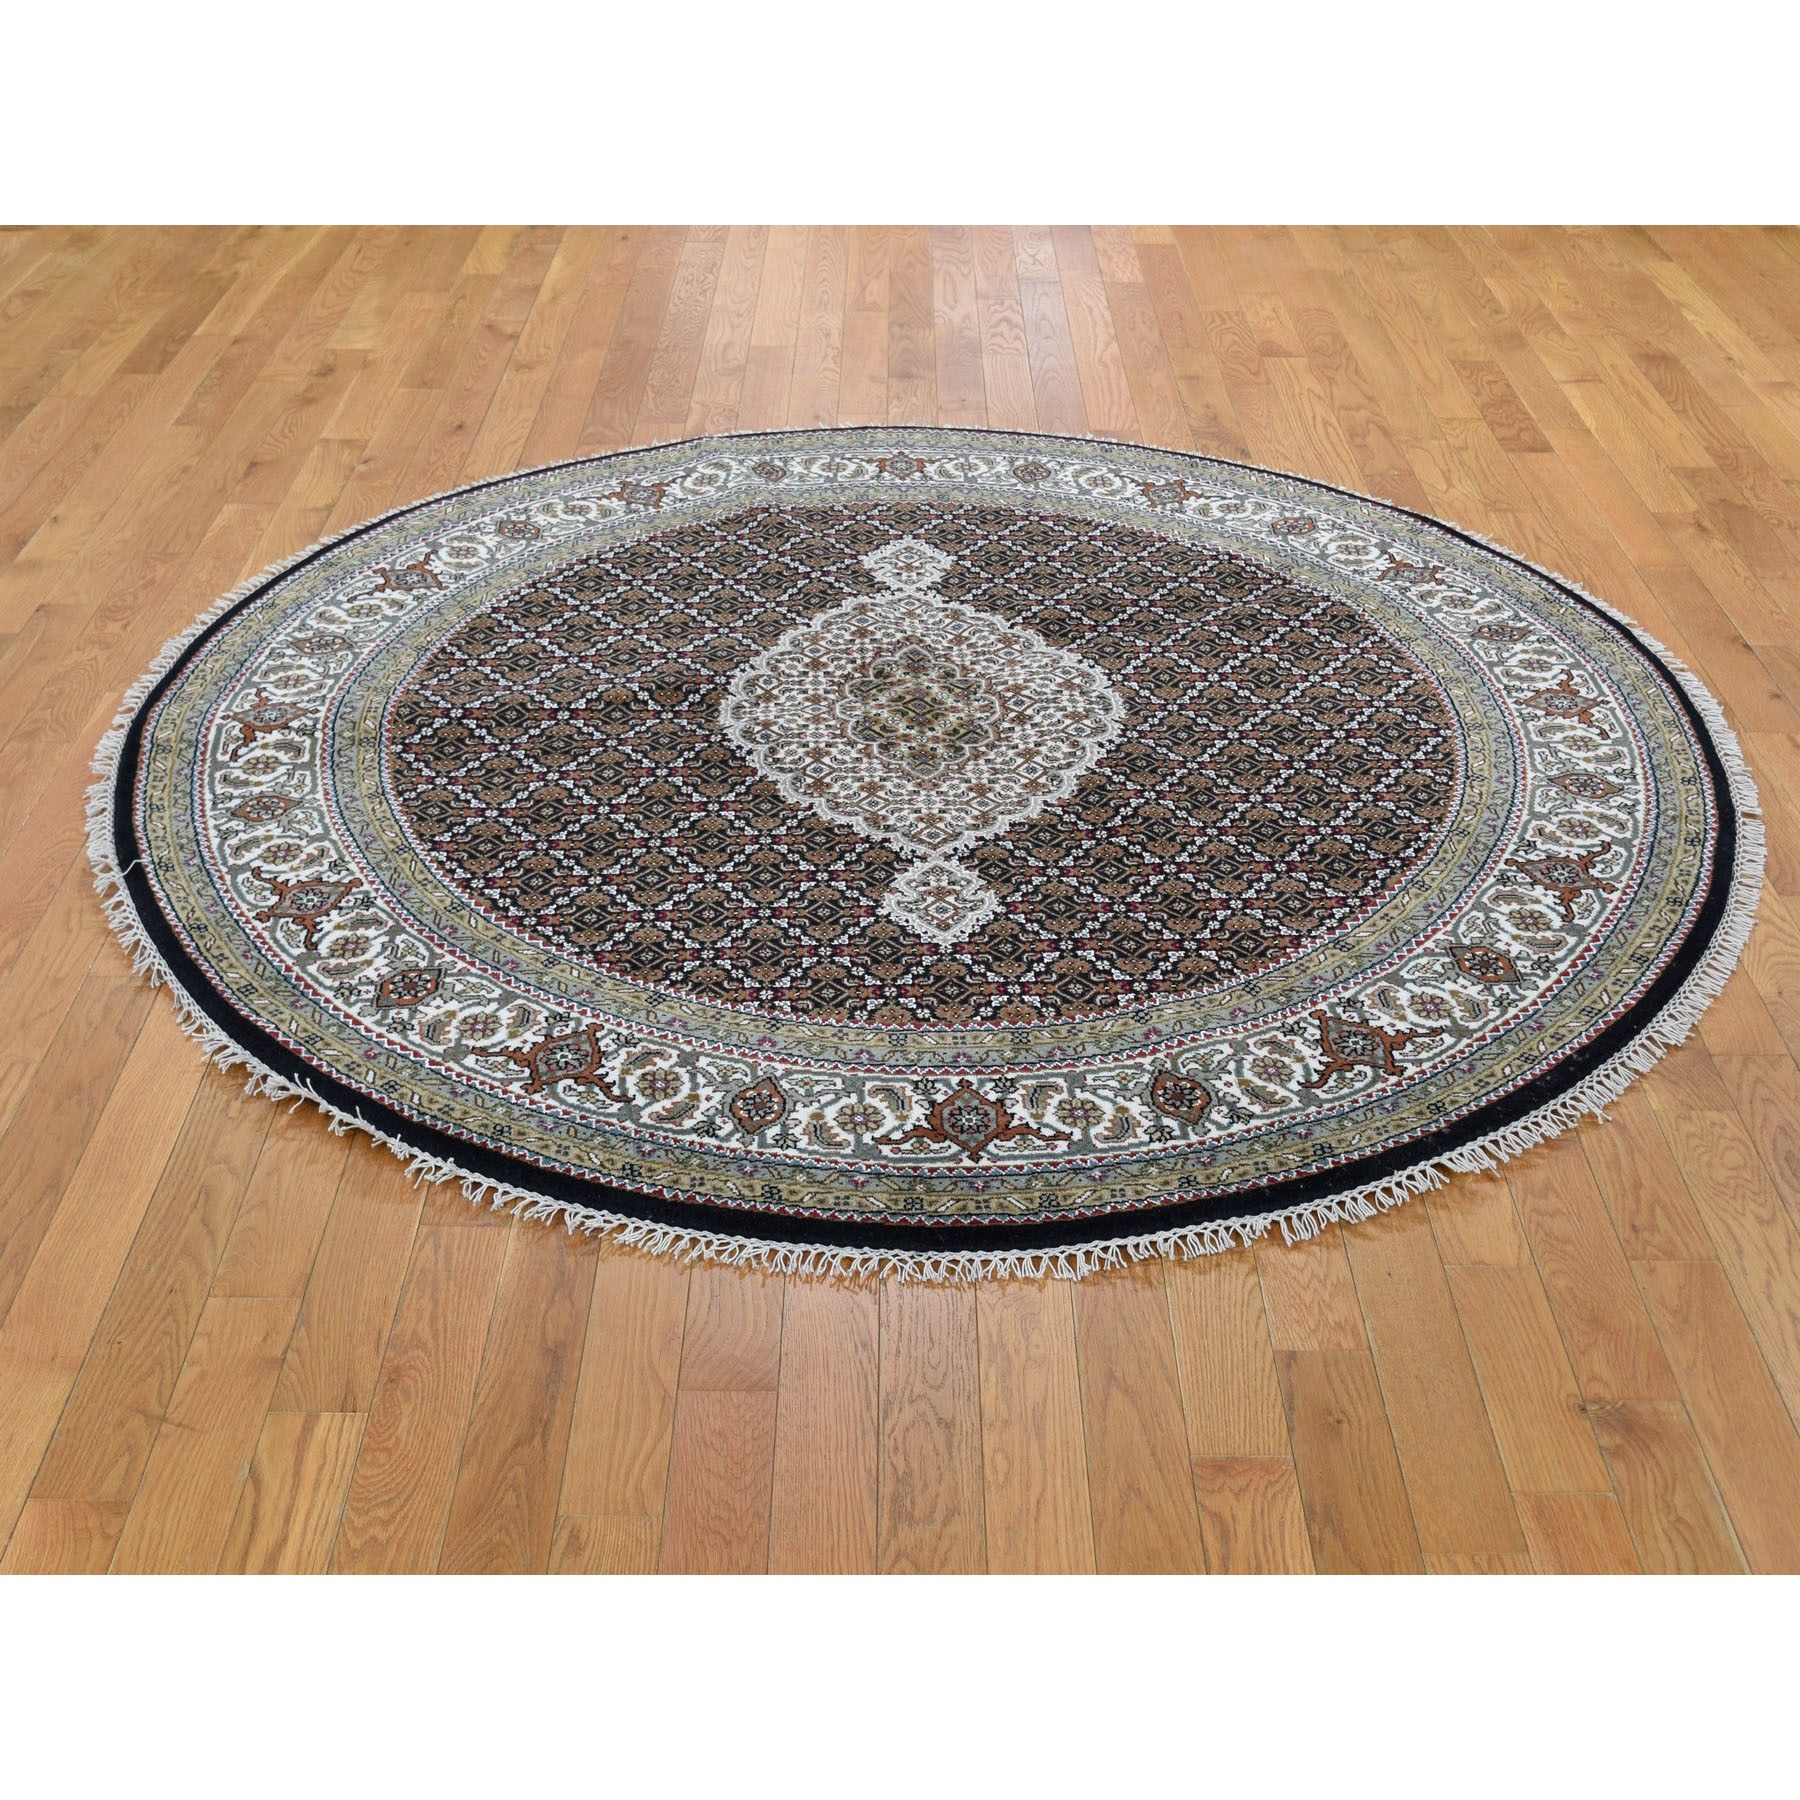 6-5 x6-5  Round Black Tabriz Mahi Wool and Silk Hand Knotted Oriental Rug